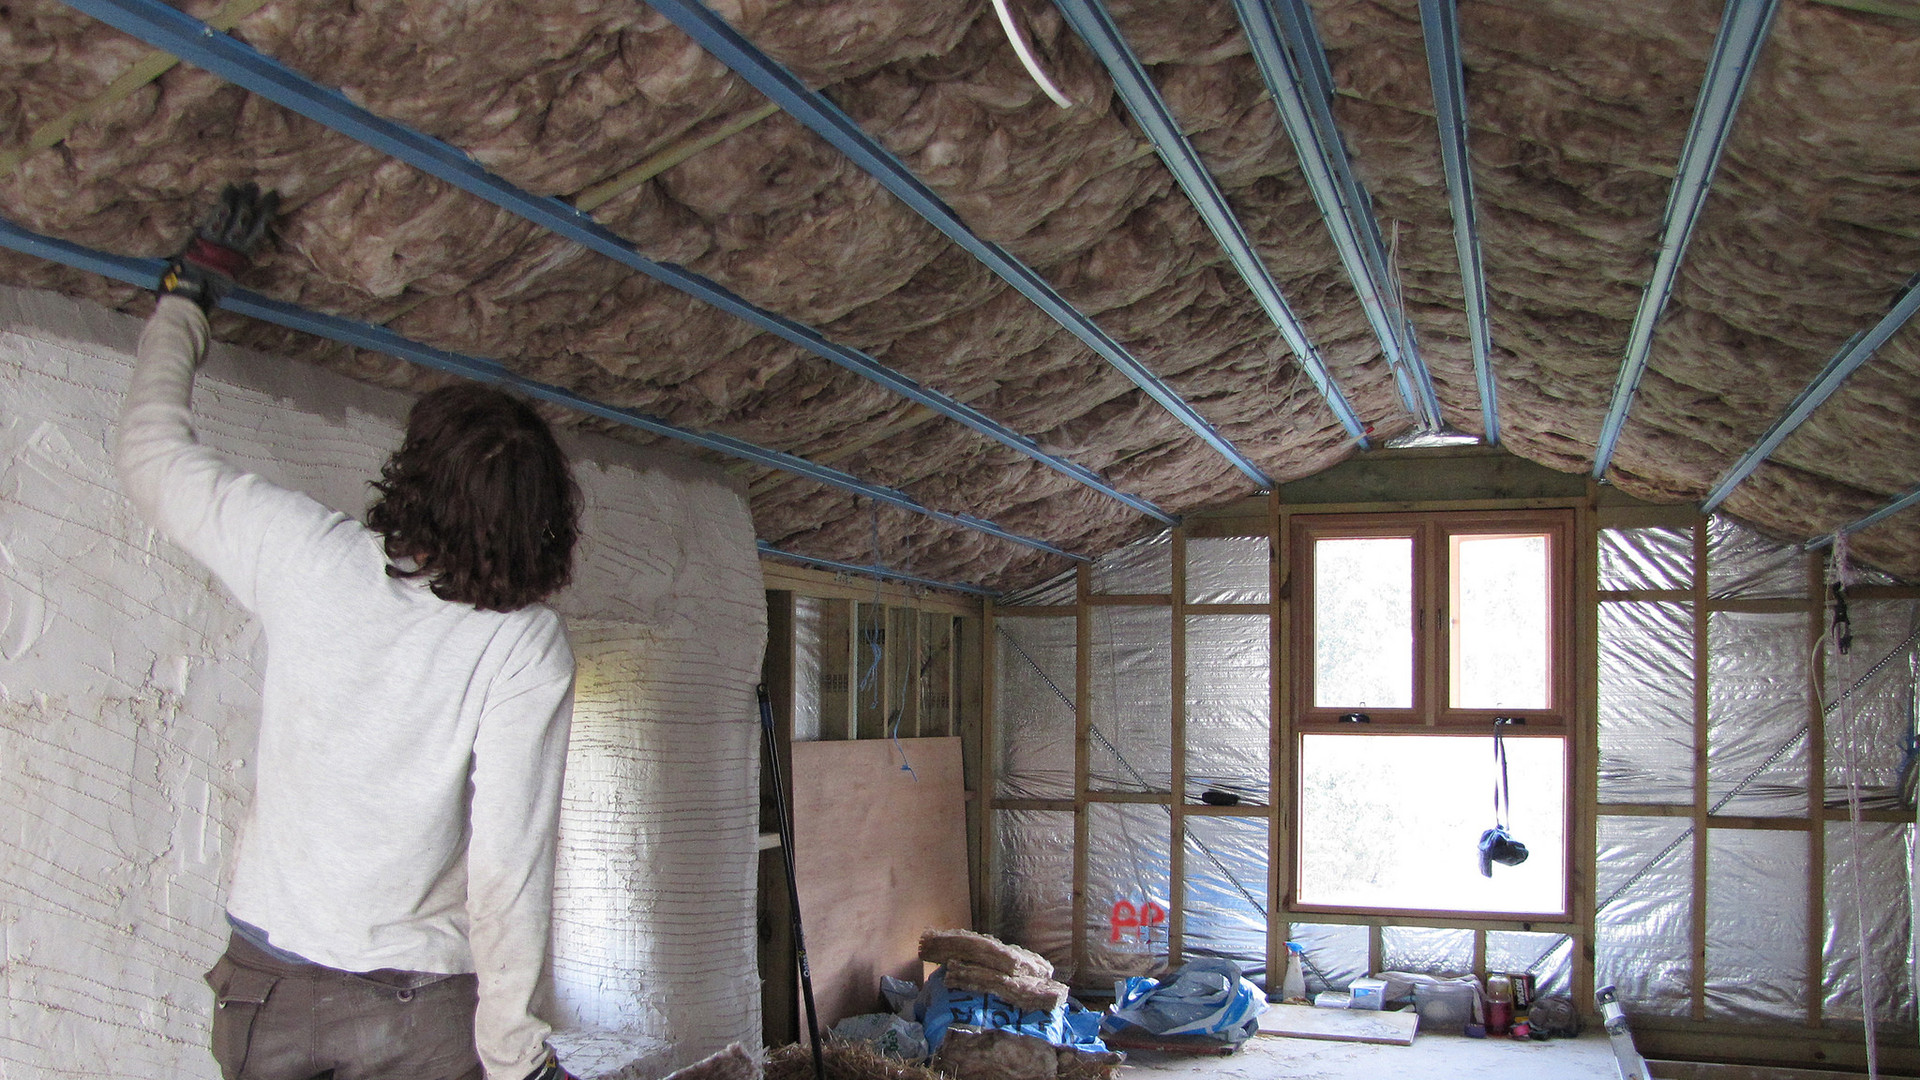 Attic Insulation & Remodeling in Baltimore